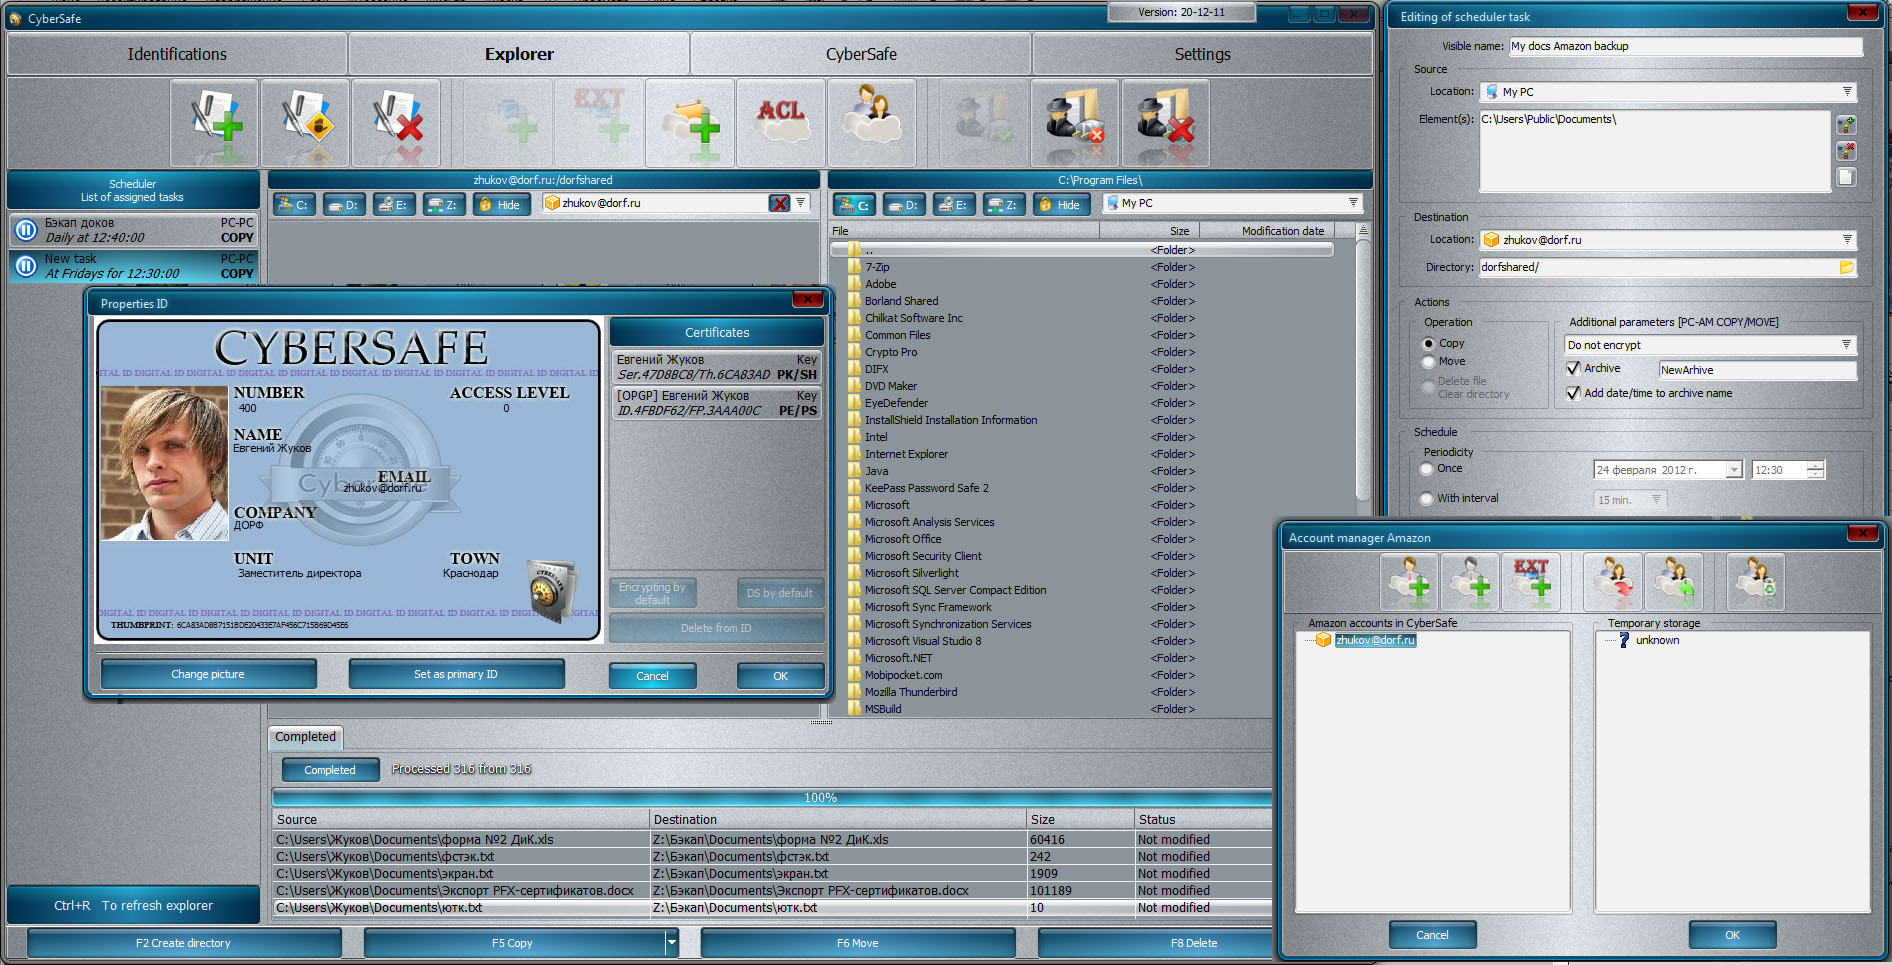 Screenshot of CyberSafe TopSecret 0.9.0